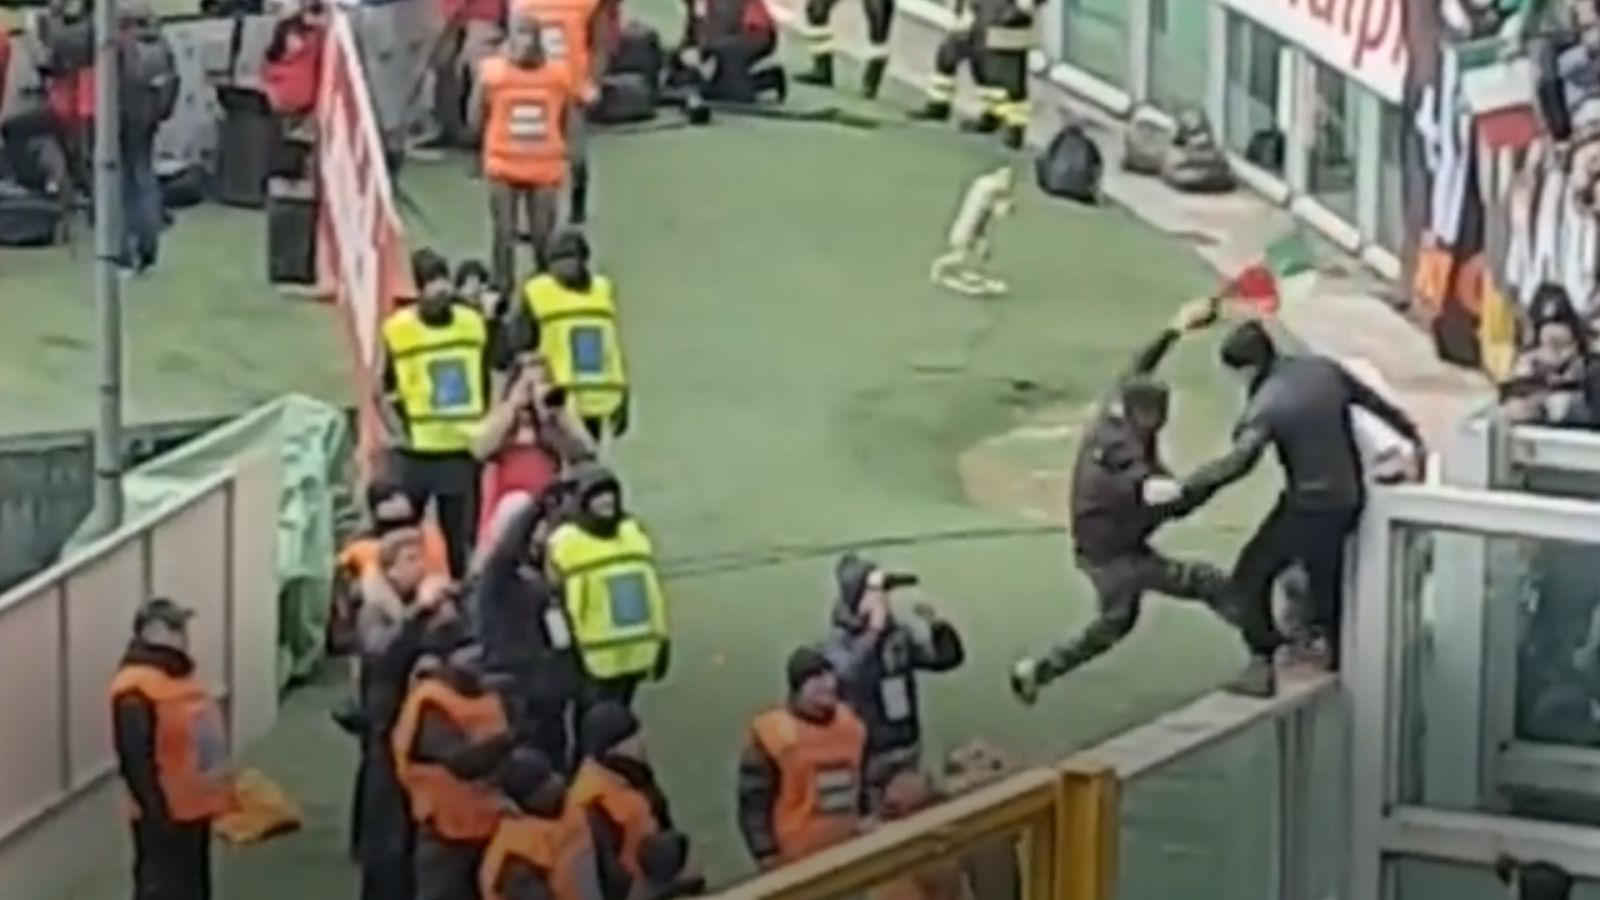 Fight Breaks Out At Football Derby In Italy